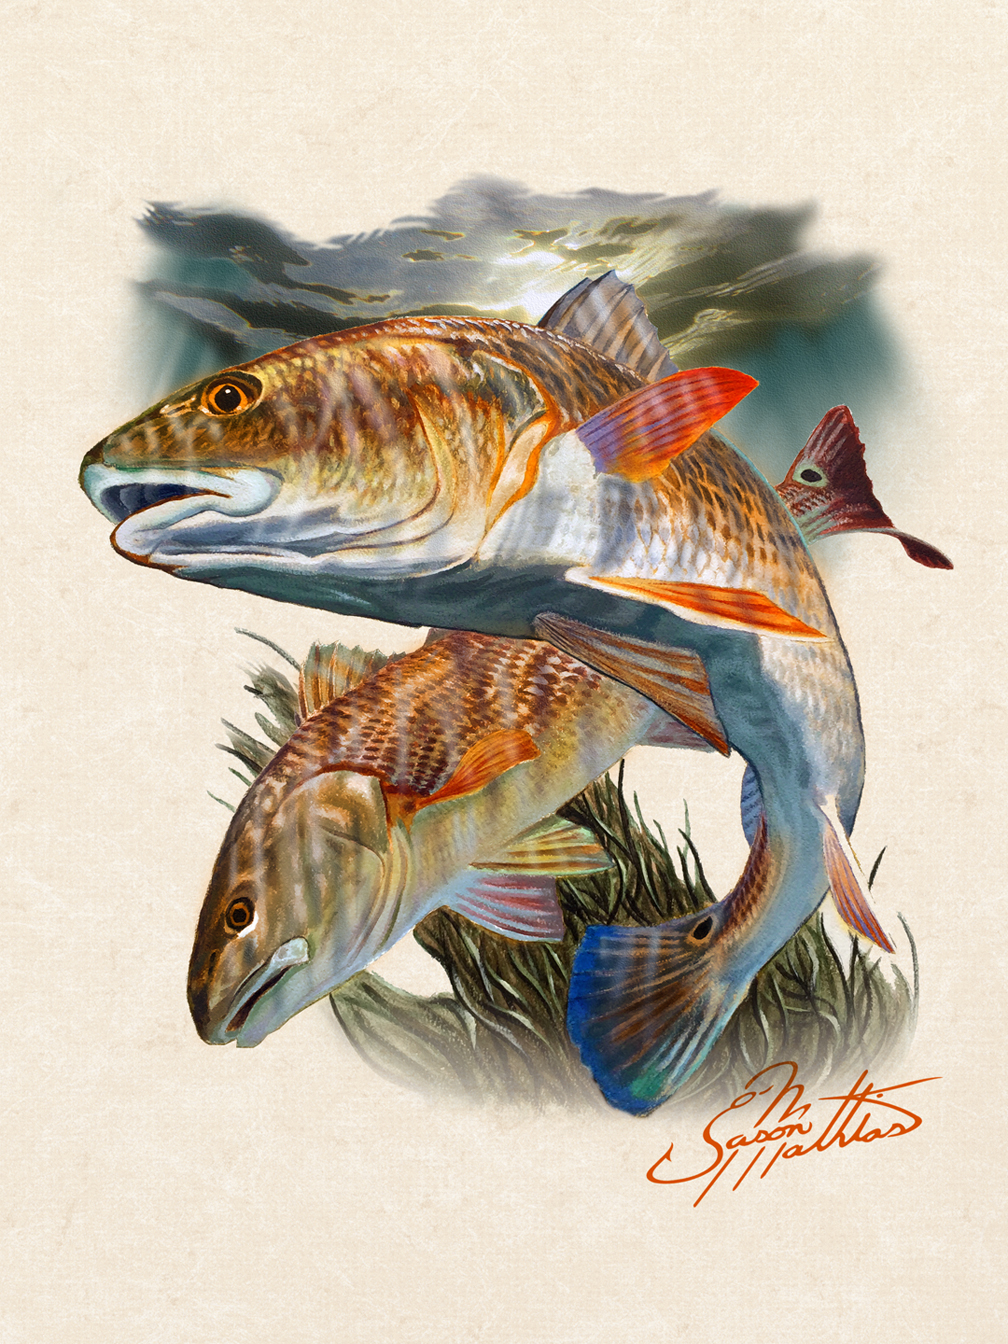 redfish-art-jason-mathias.jpg